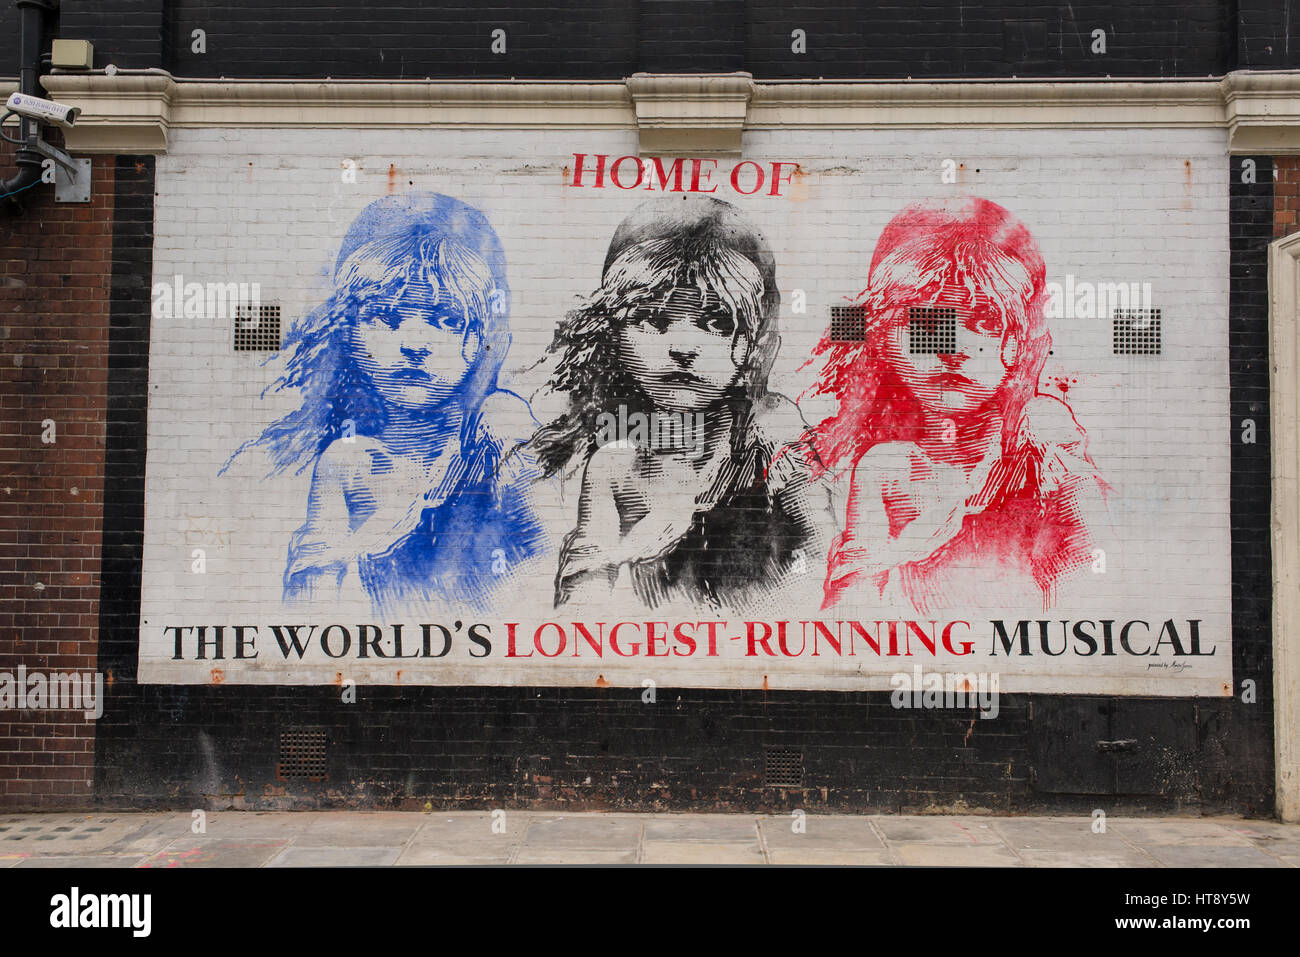 Mural in Soho promoting 'Les Miserables', the world's longest-running musical, showing at the Queens - Stock Image